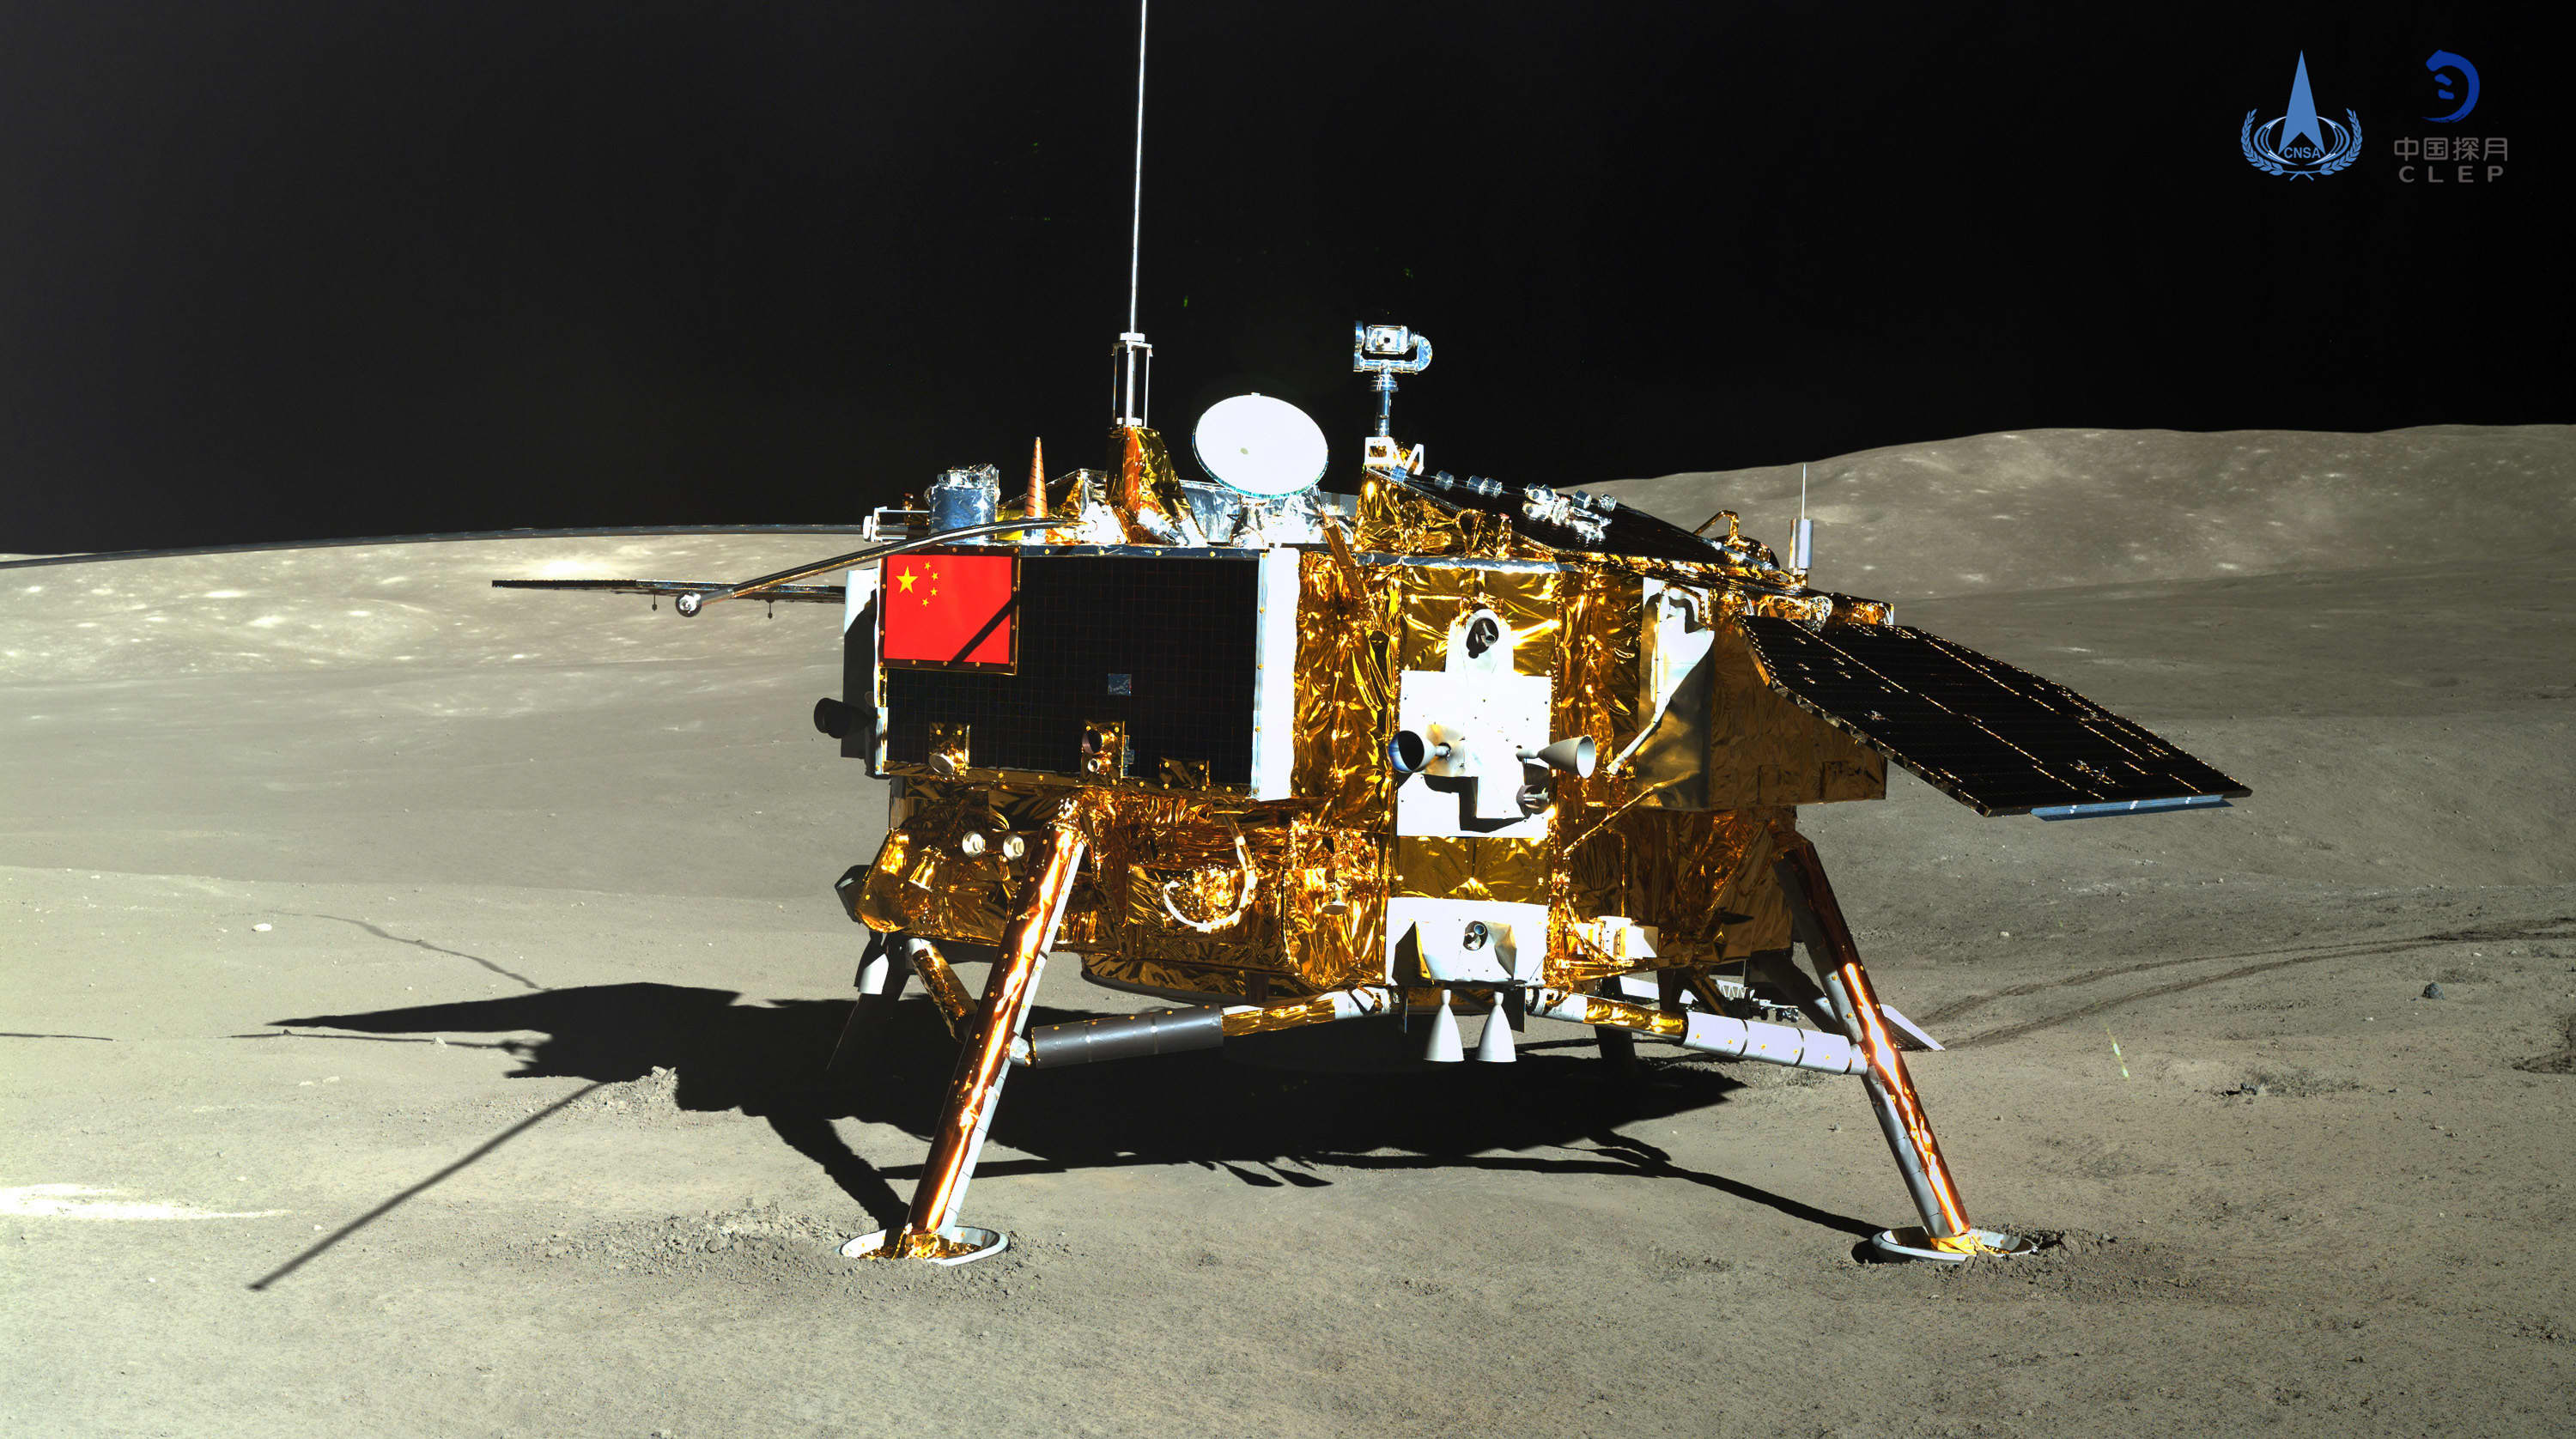 Russian-Chinese pact to explore the moon is another sign the U.S. must change its approach to Moscow - CNBC